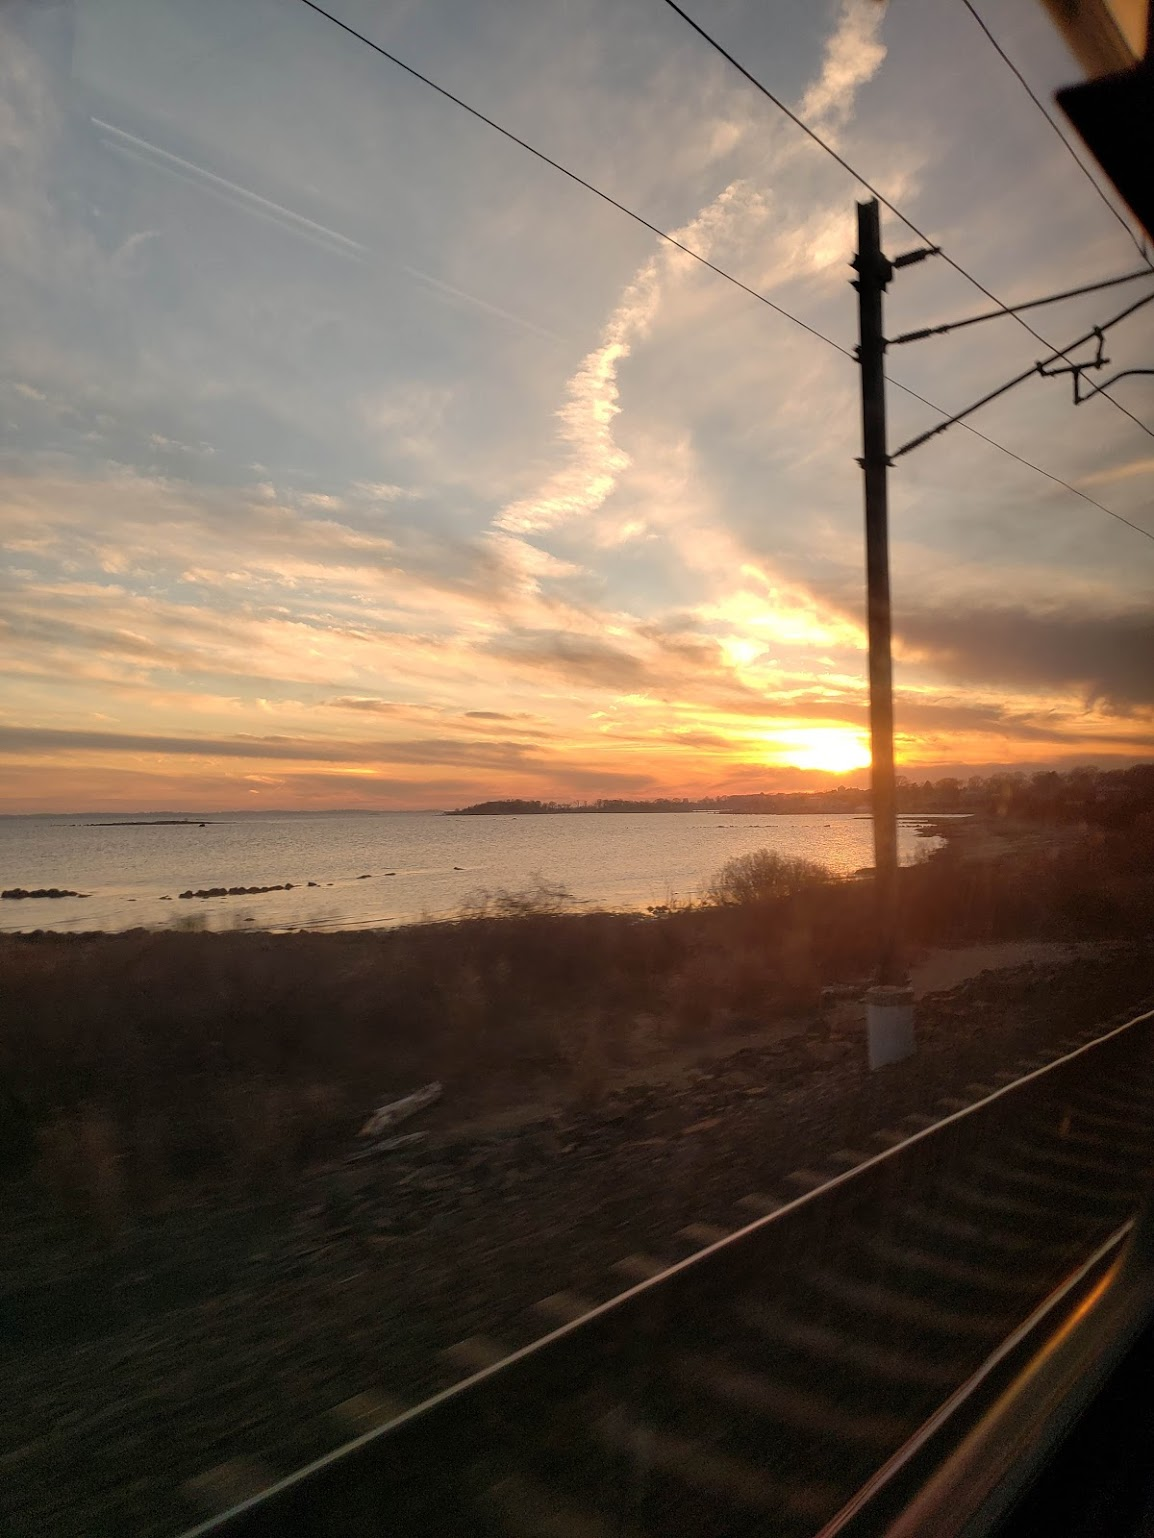 BJ Knapp author of Beside the Music took an epic weekend train trip to NYC and Philly